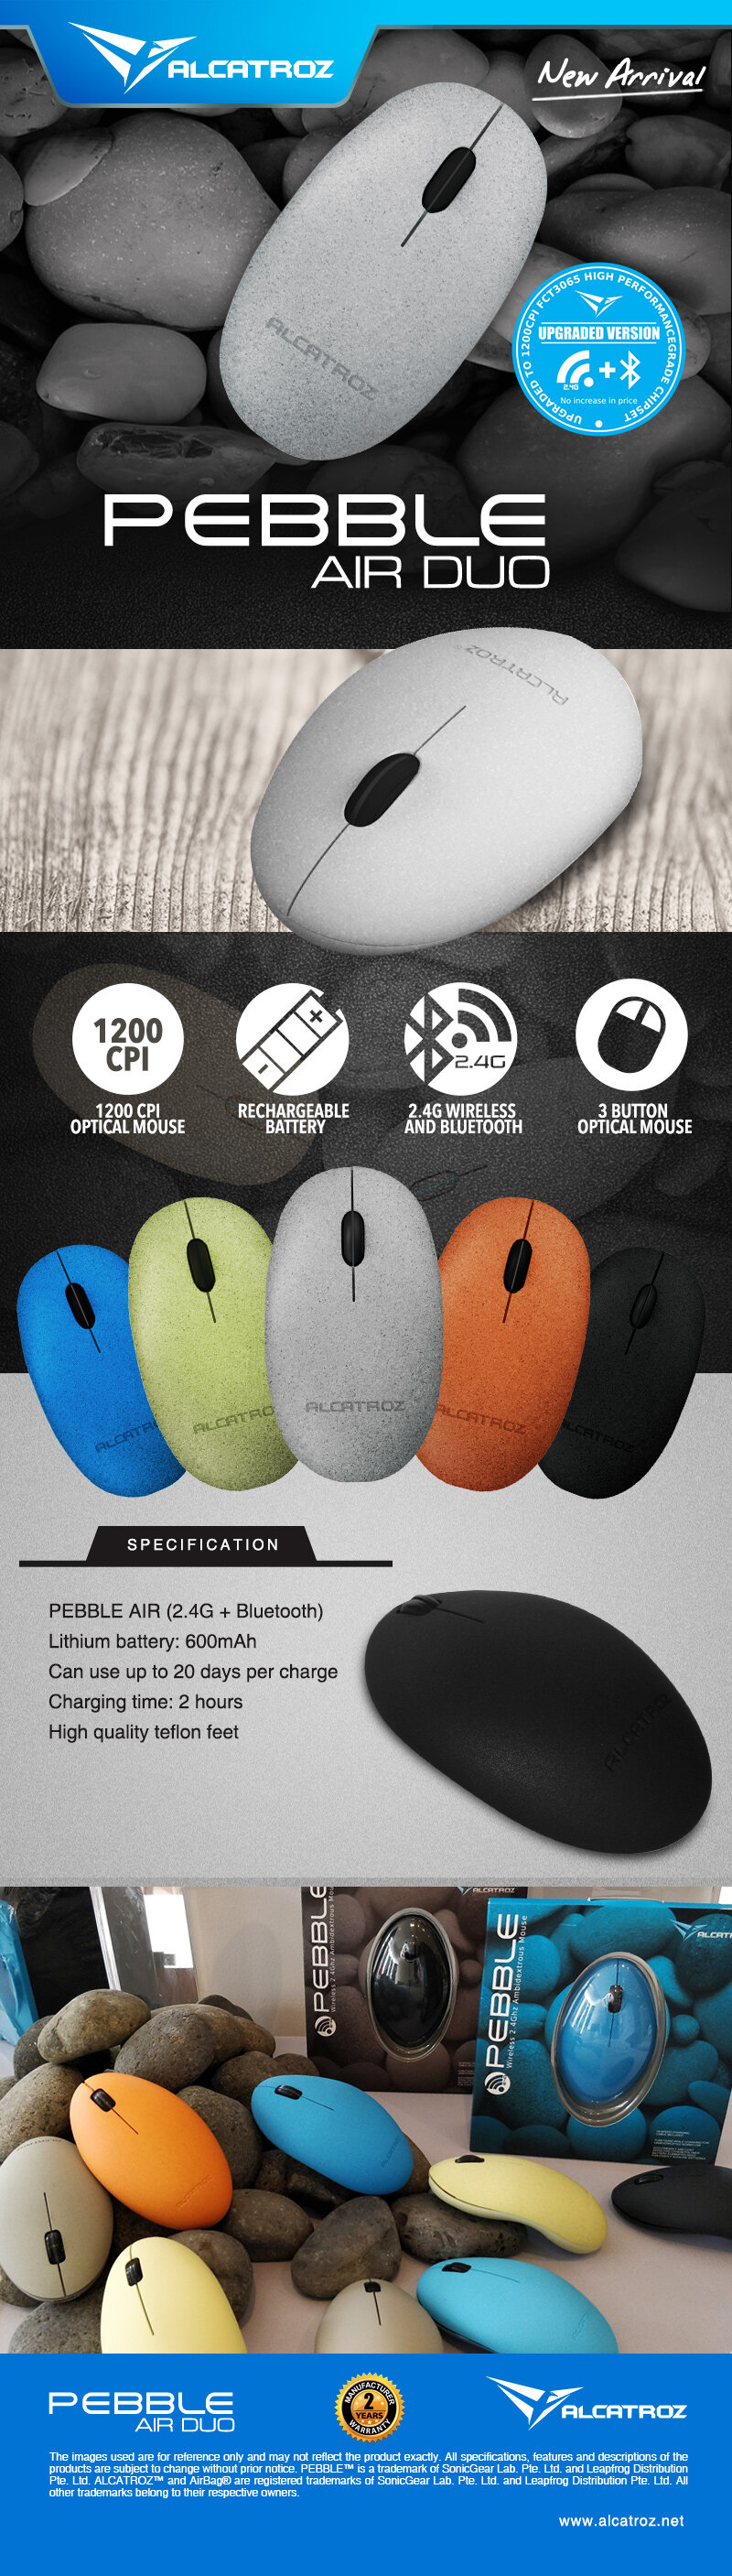 Alcatroz Pebble Air High Resolution 1200CPI Wireless